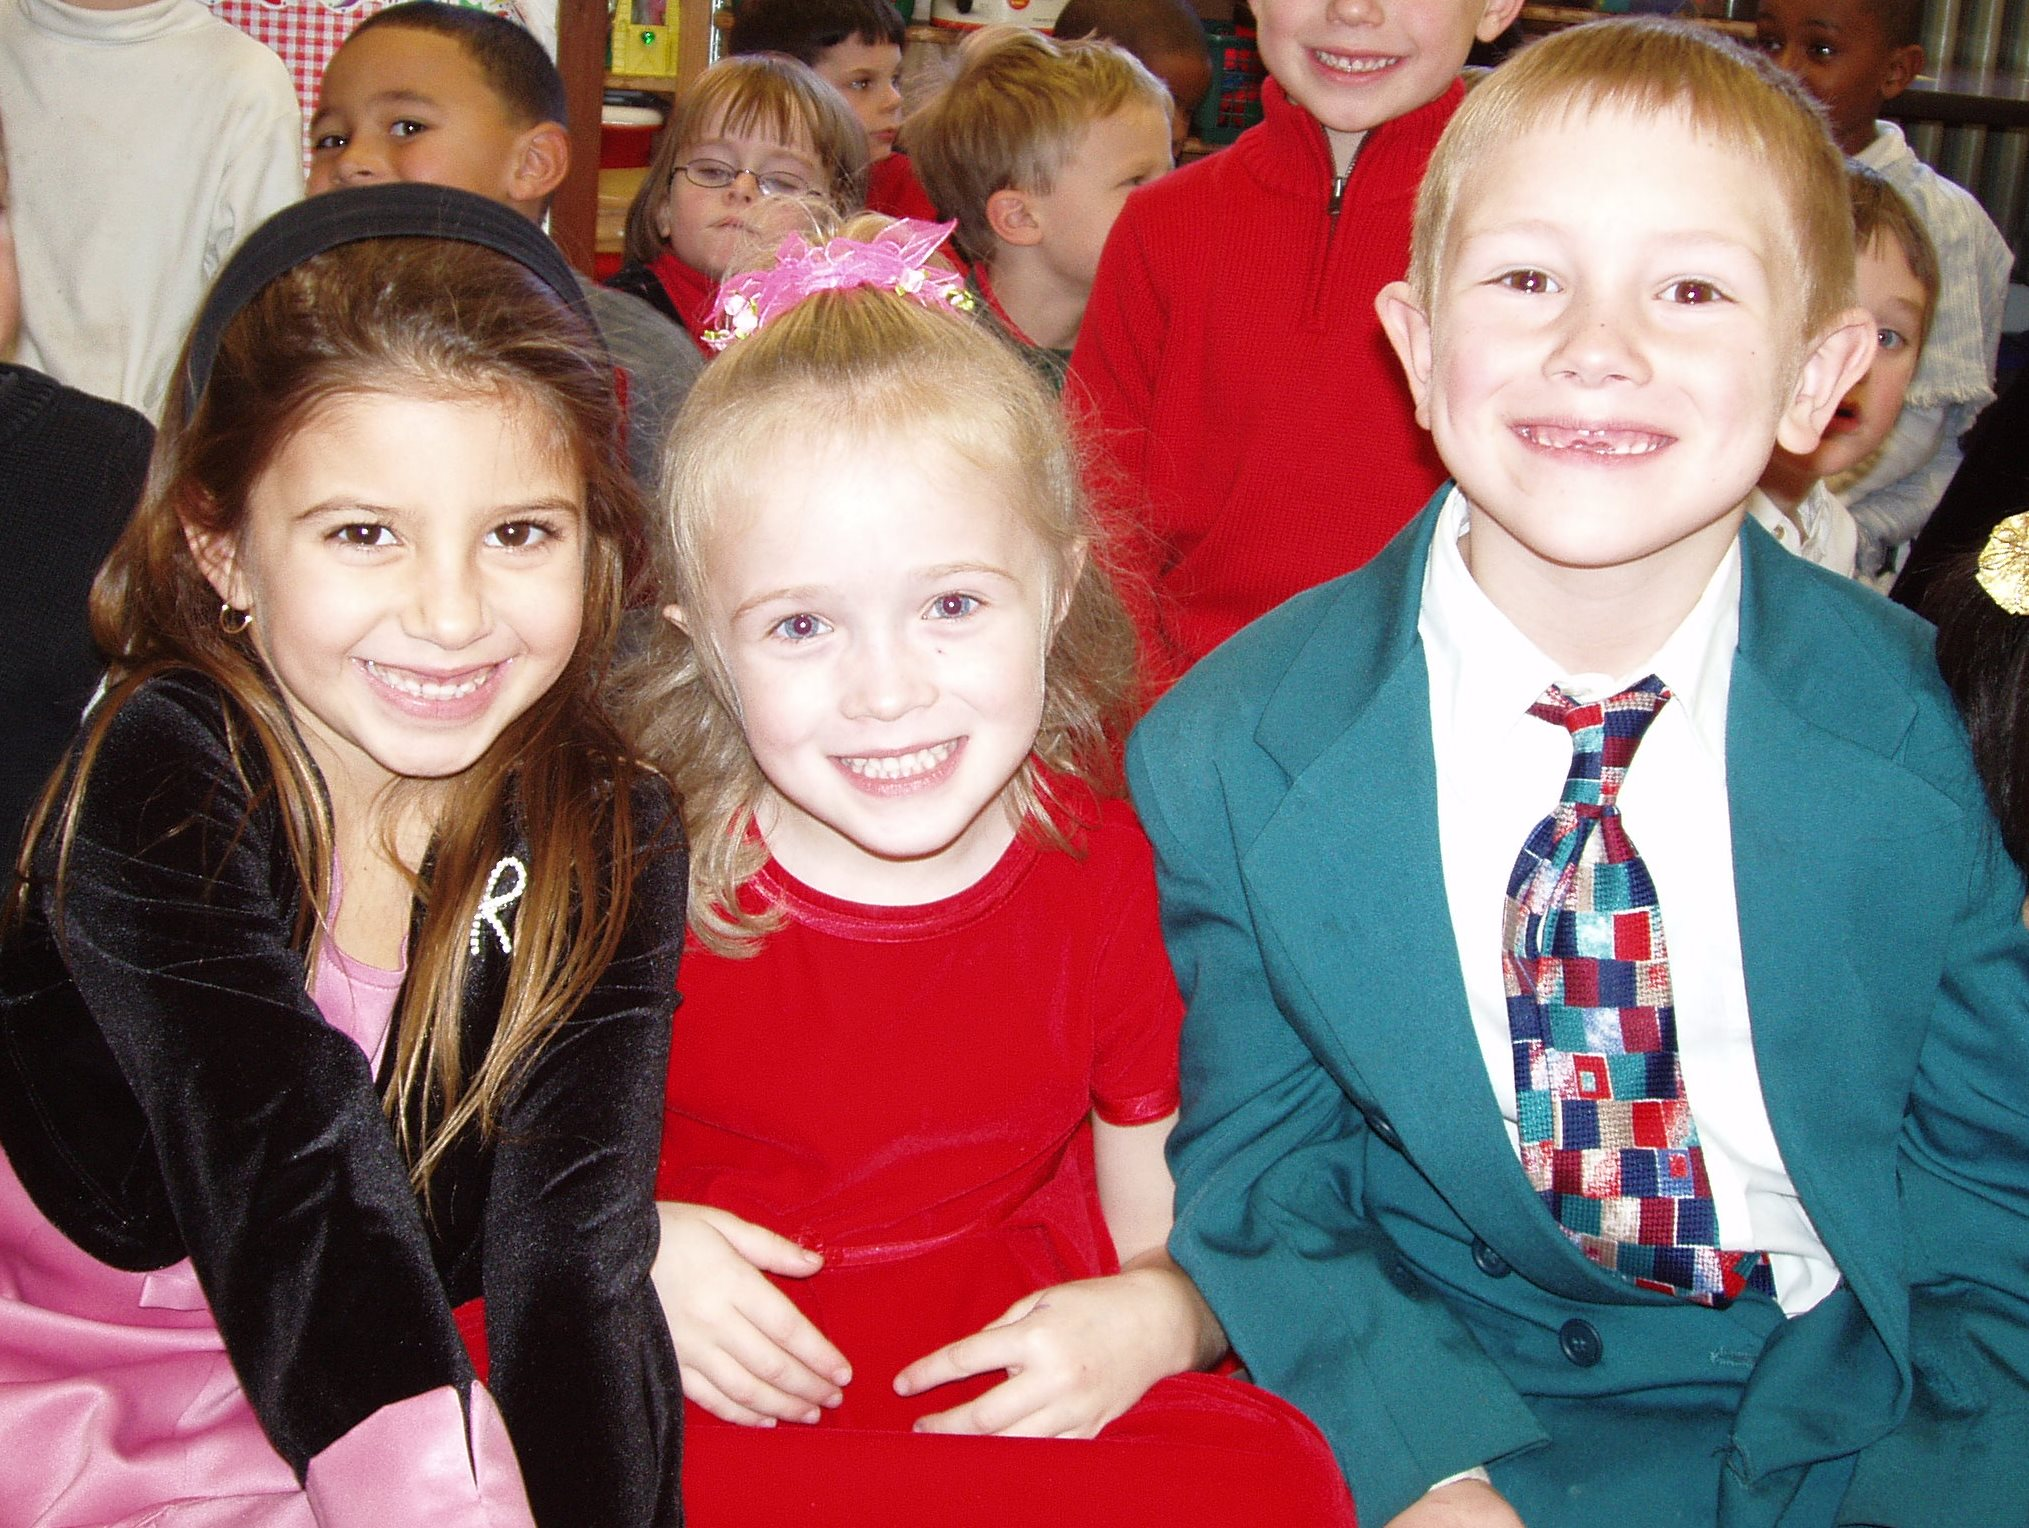 Young children all dressed up for Christmas Step by Step musical.